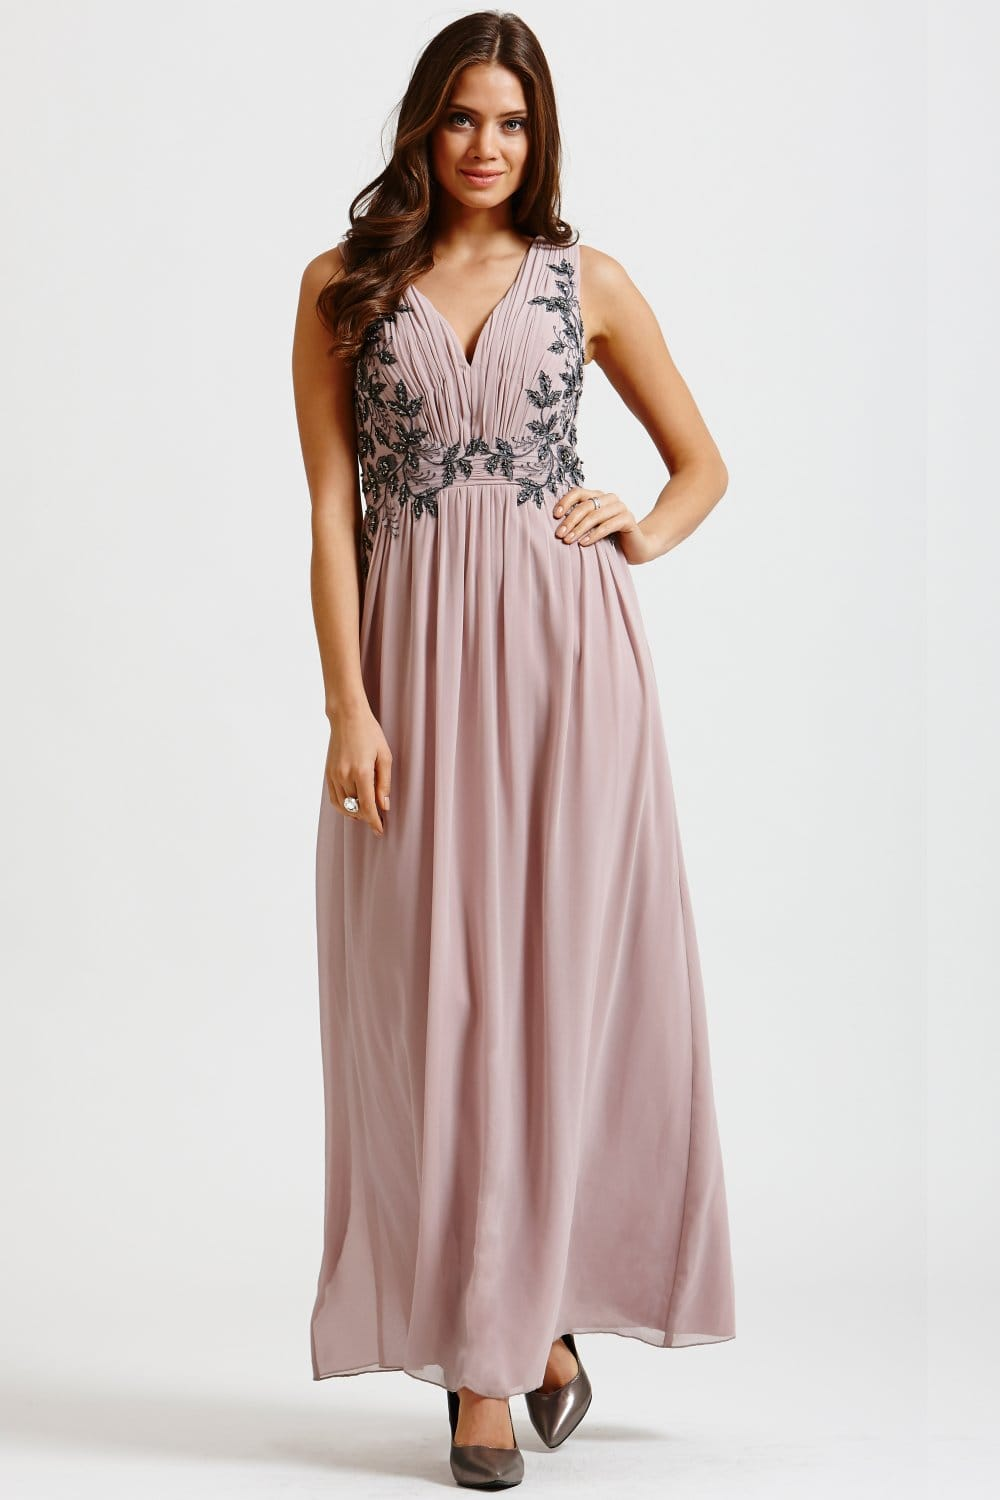 Cream Chiffon Leaf Embellished Maxi Dress - from Little Mistress UK